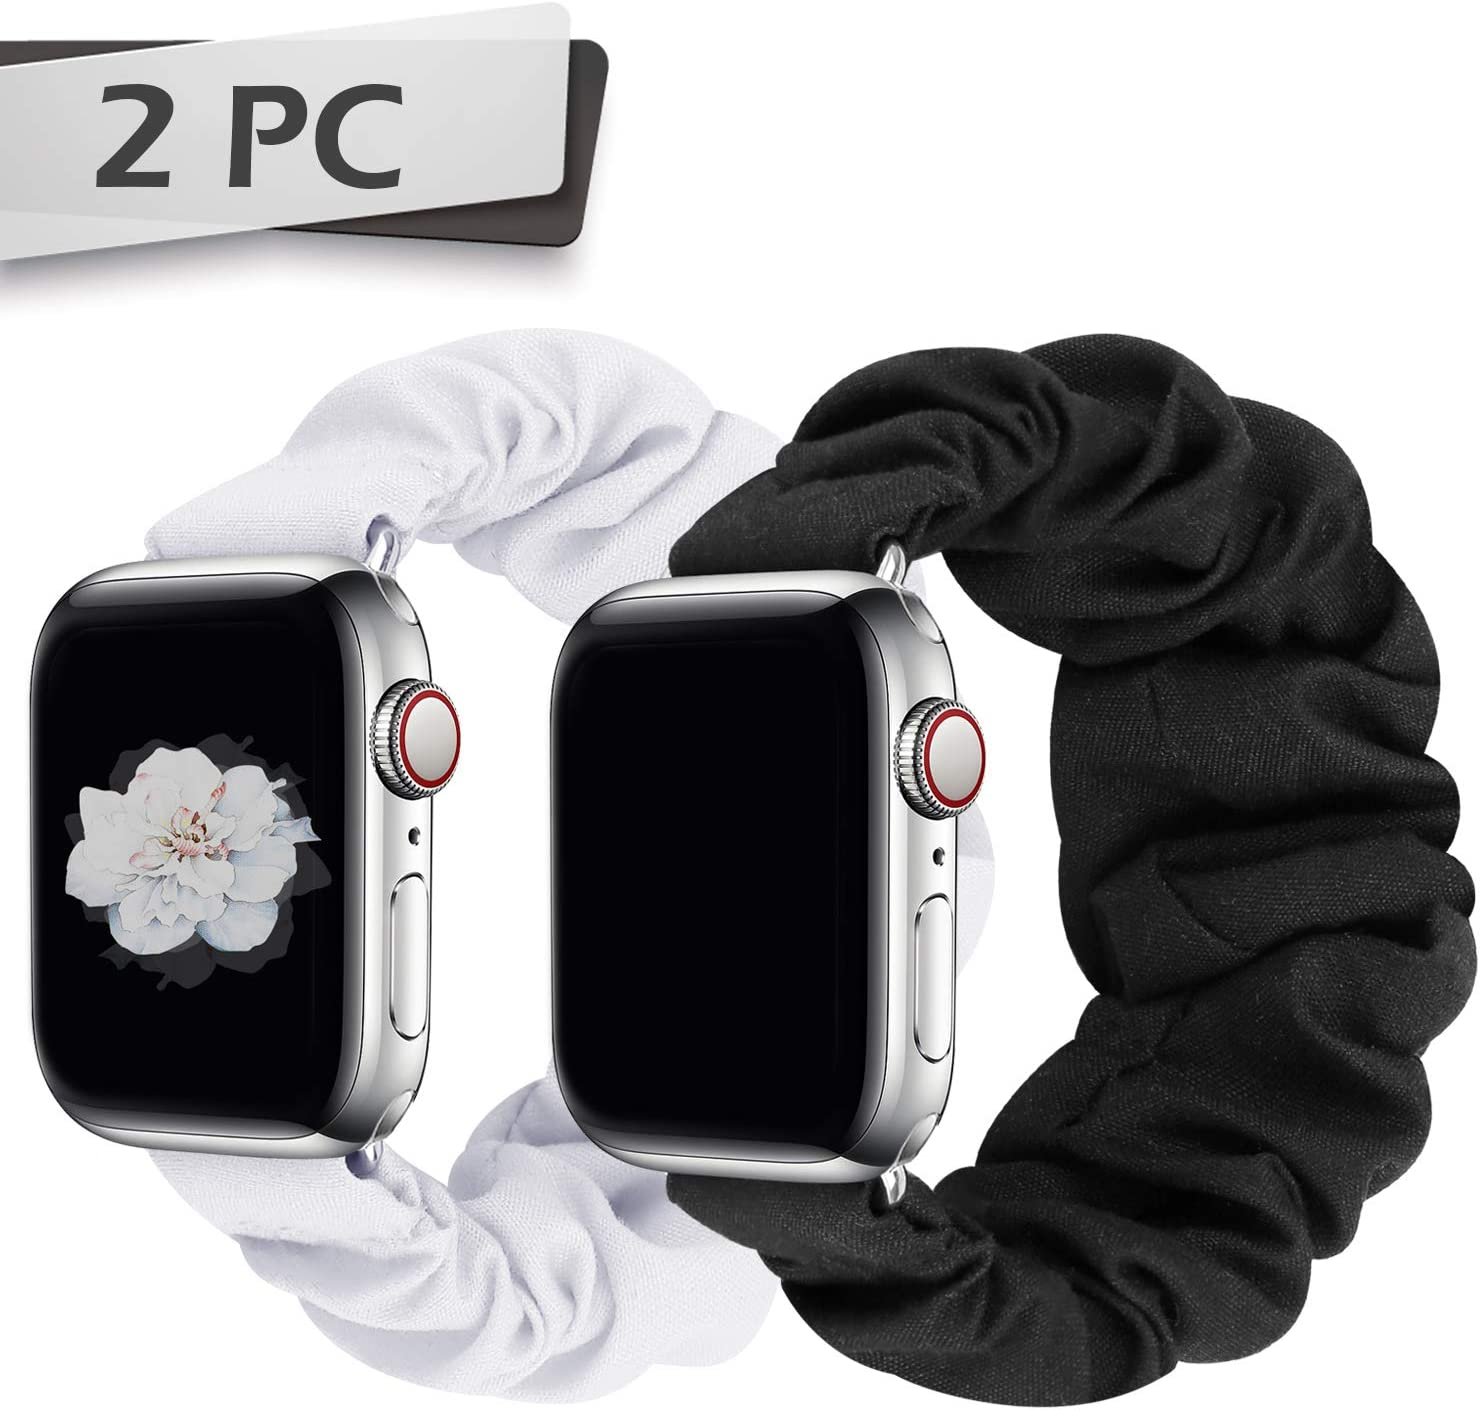 JIELIELE Compatible with Scrunchie Apple Watch Band 38mm 40mm 42mm 44mm, Cute Elastic Wristbands for Women, Stretchy Strap Iwatch Bands for Apple Watch Series SE 6 5 4 3 2 1 (S-38/40 B+W)